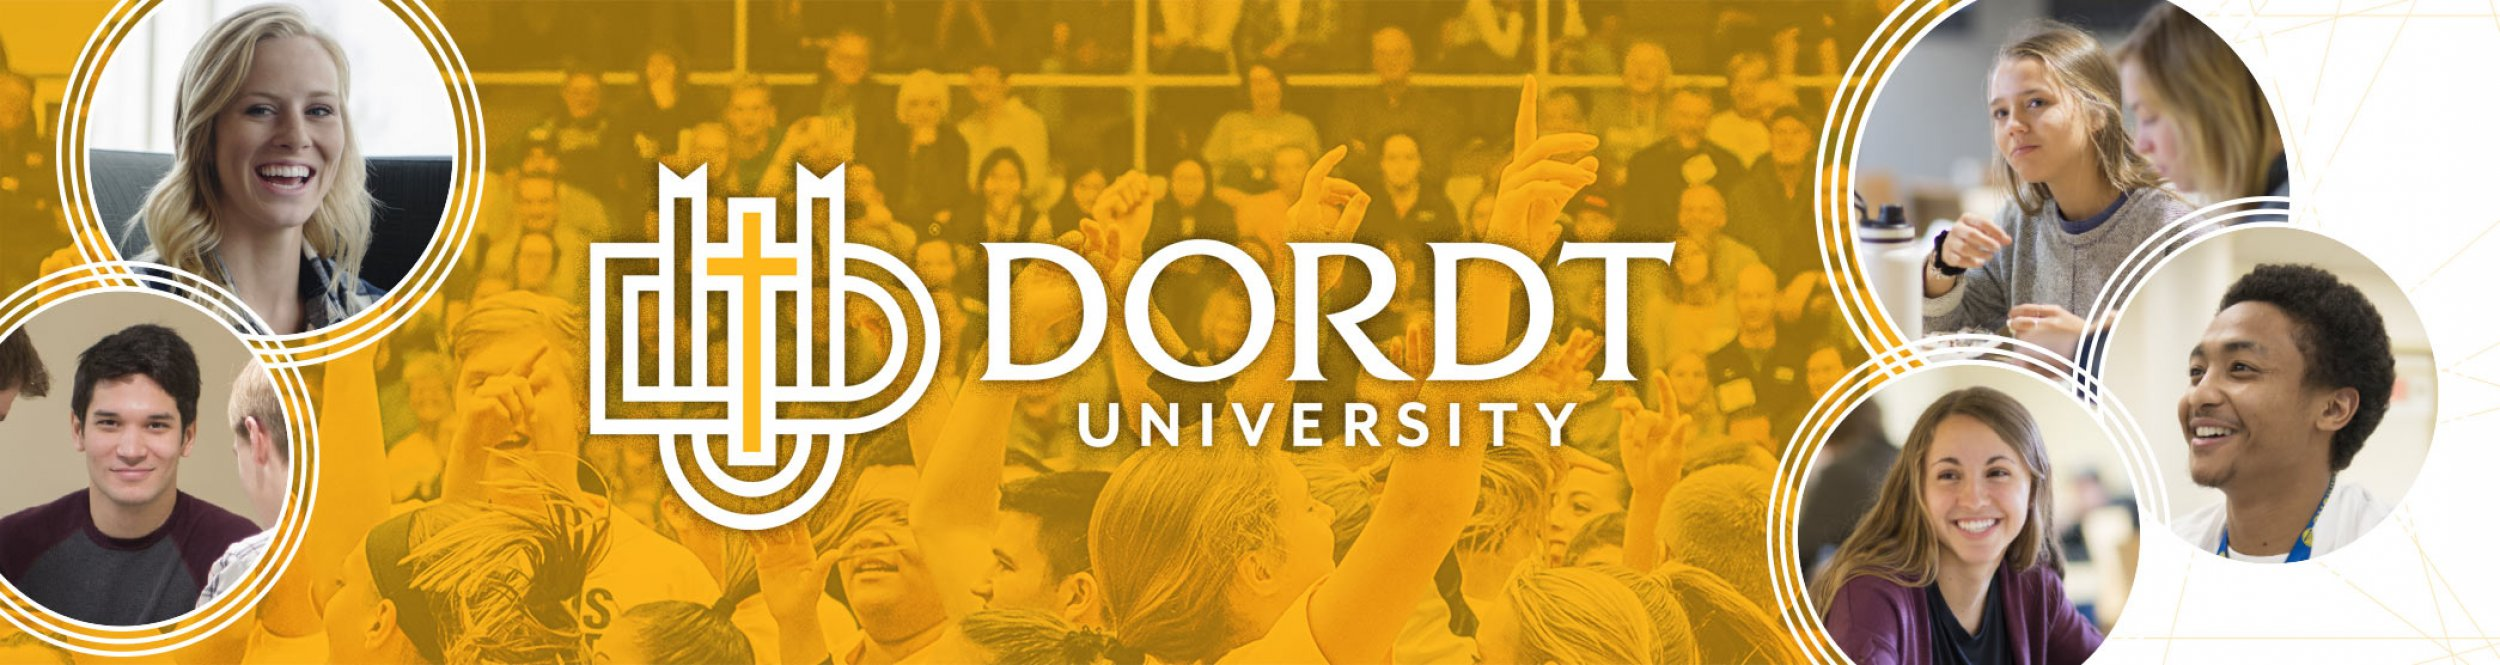 "The text ""Dordt University"" over students cheering."